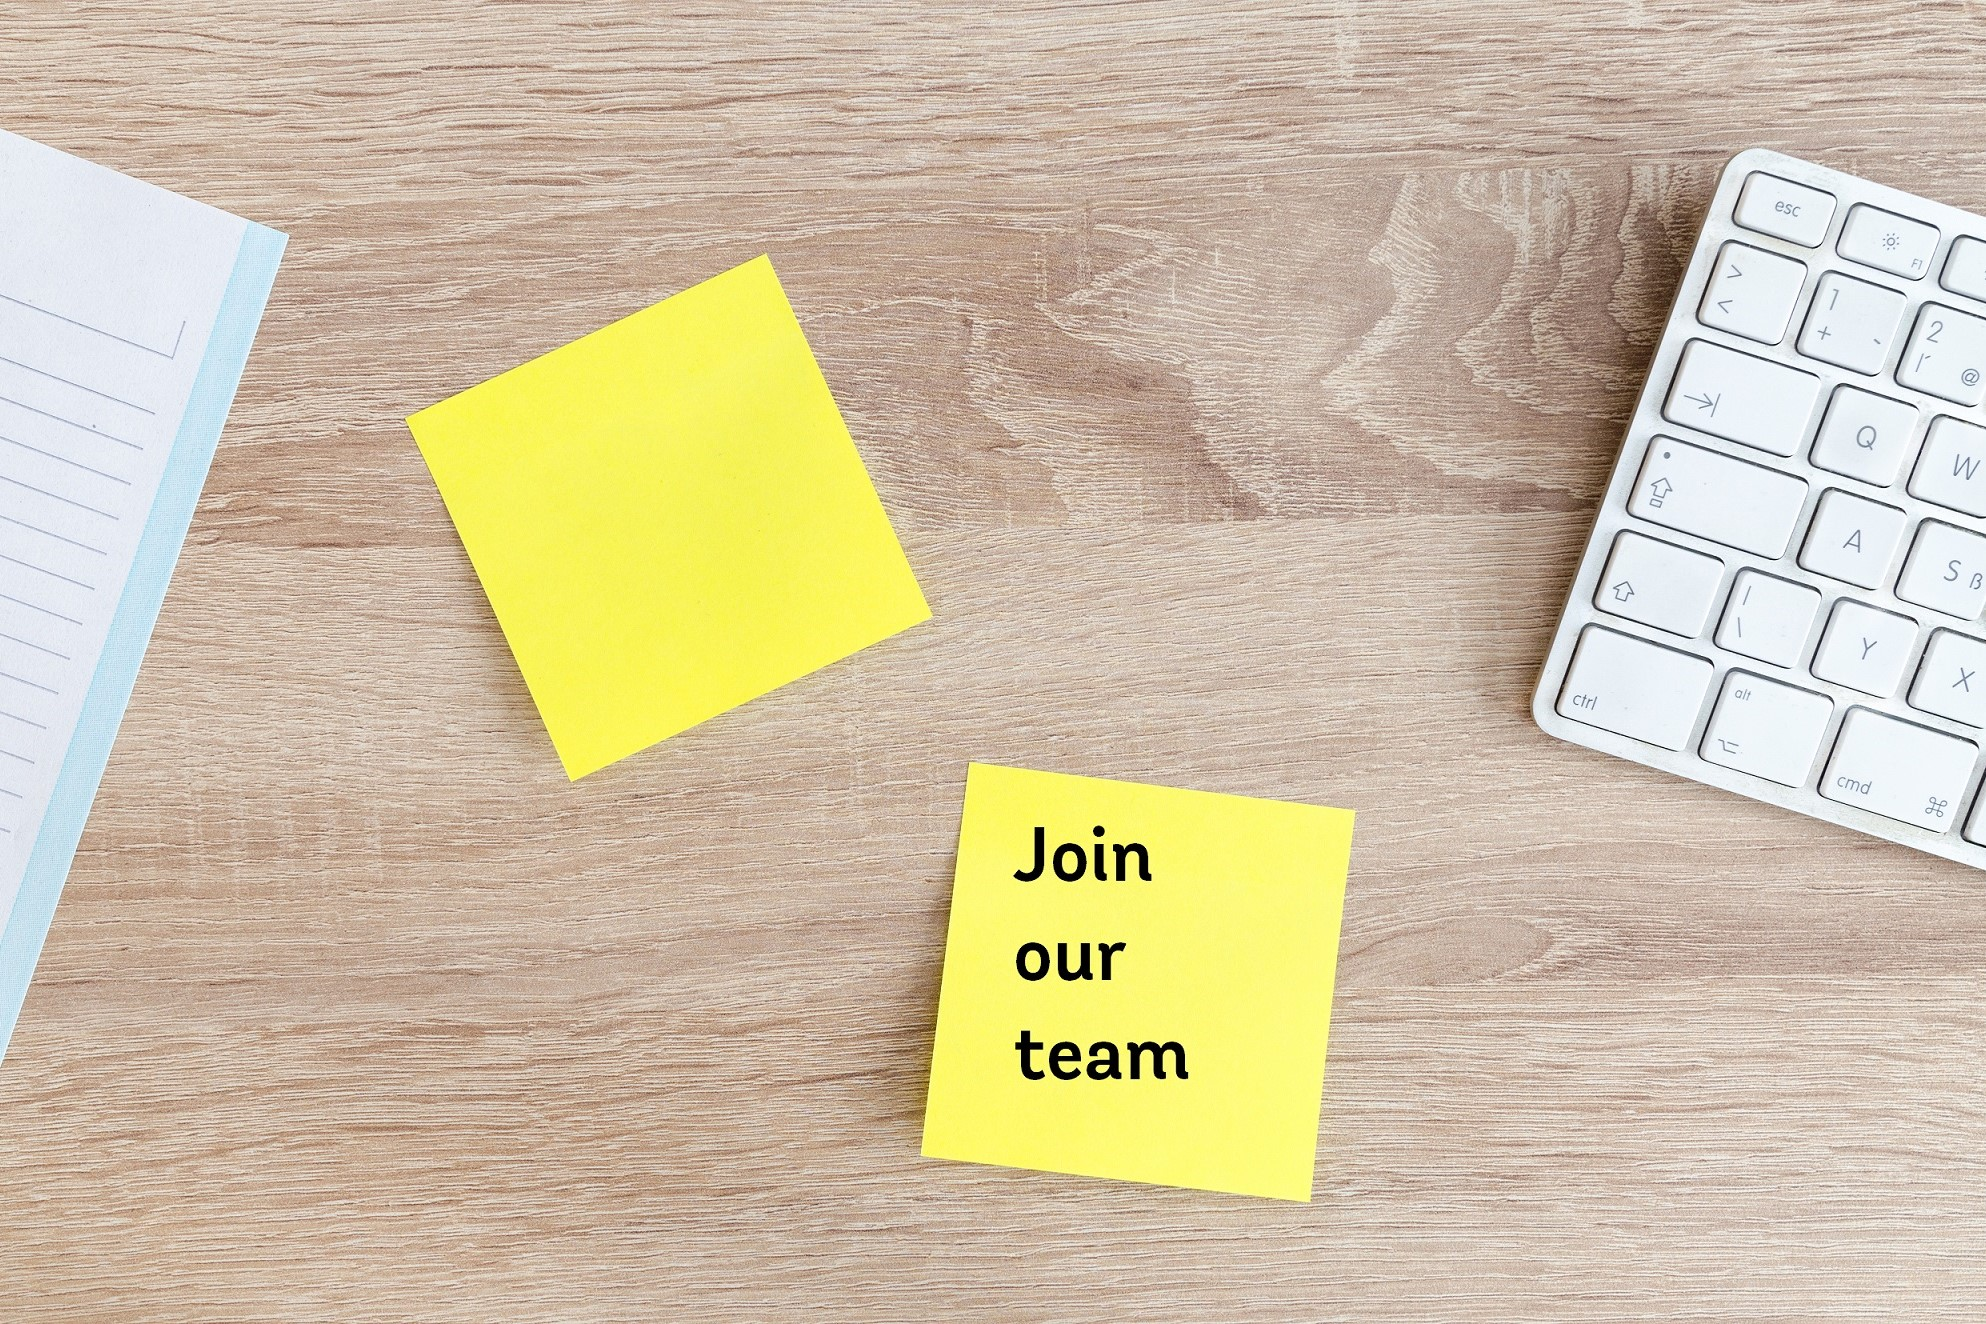 join our team post it note at desk to work with us in an office team